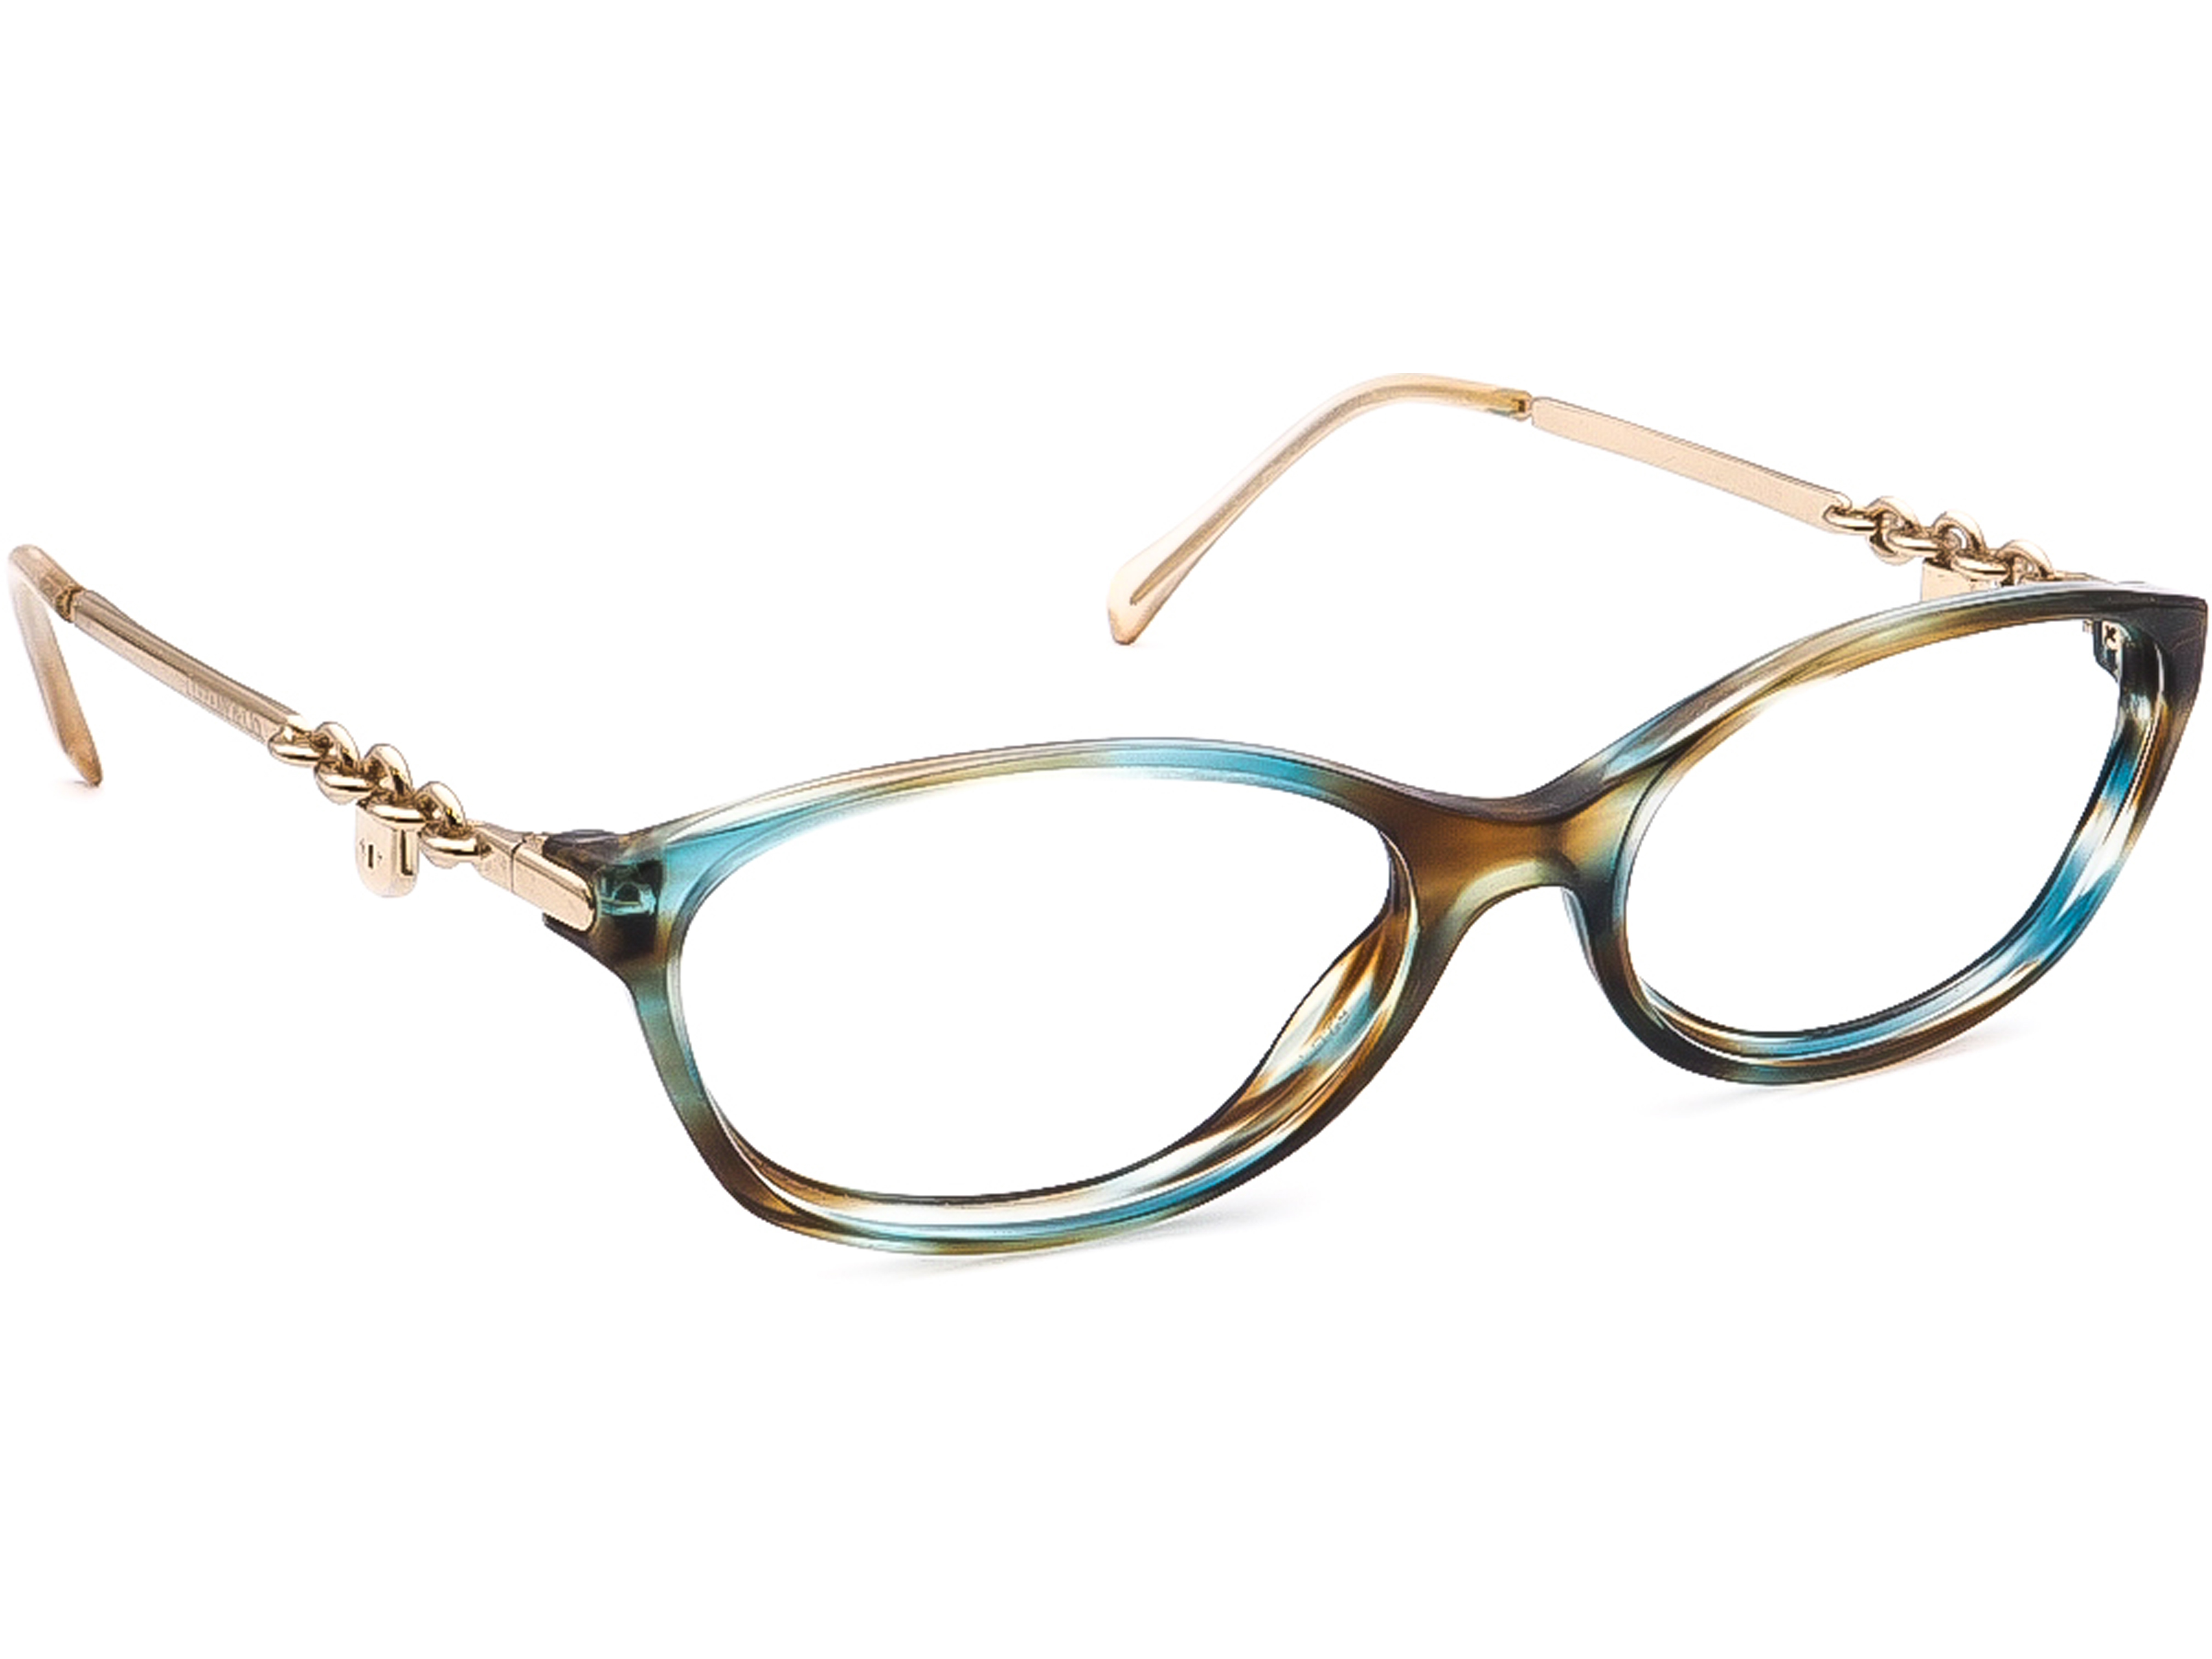 Tiffany & Co. TF2063 8124 Eyeglasses